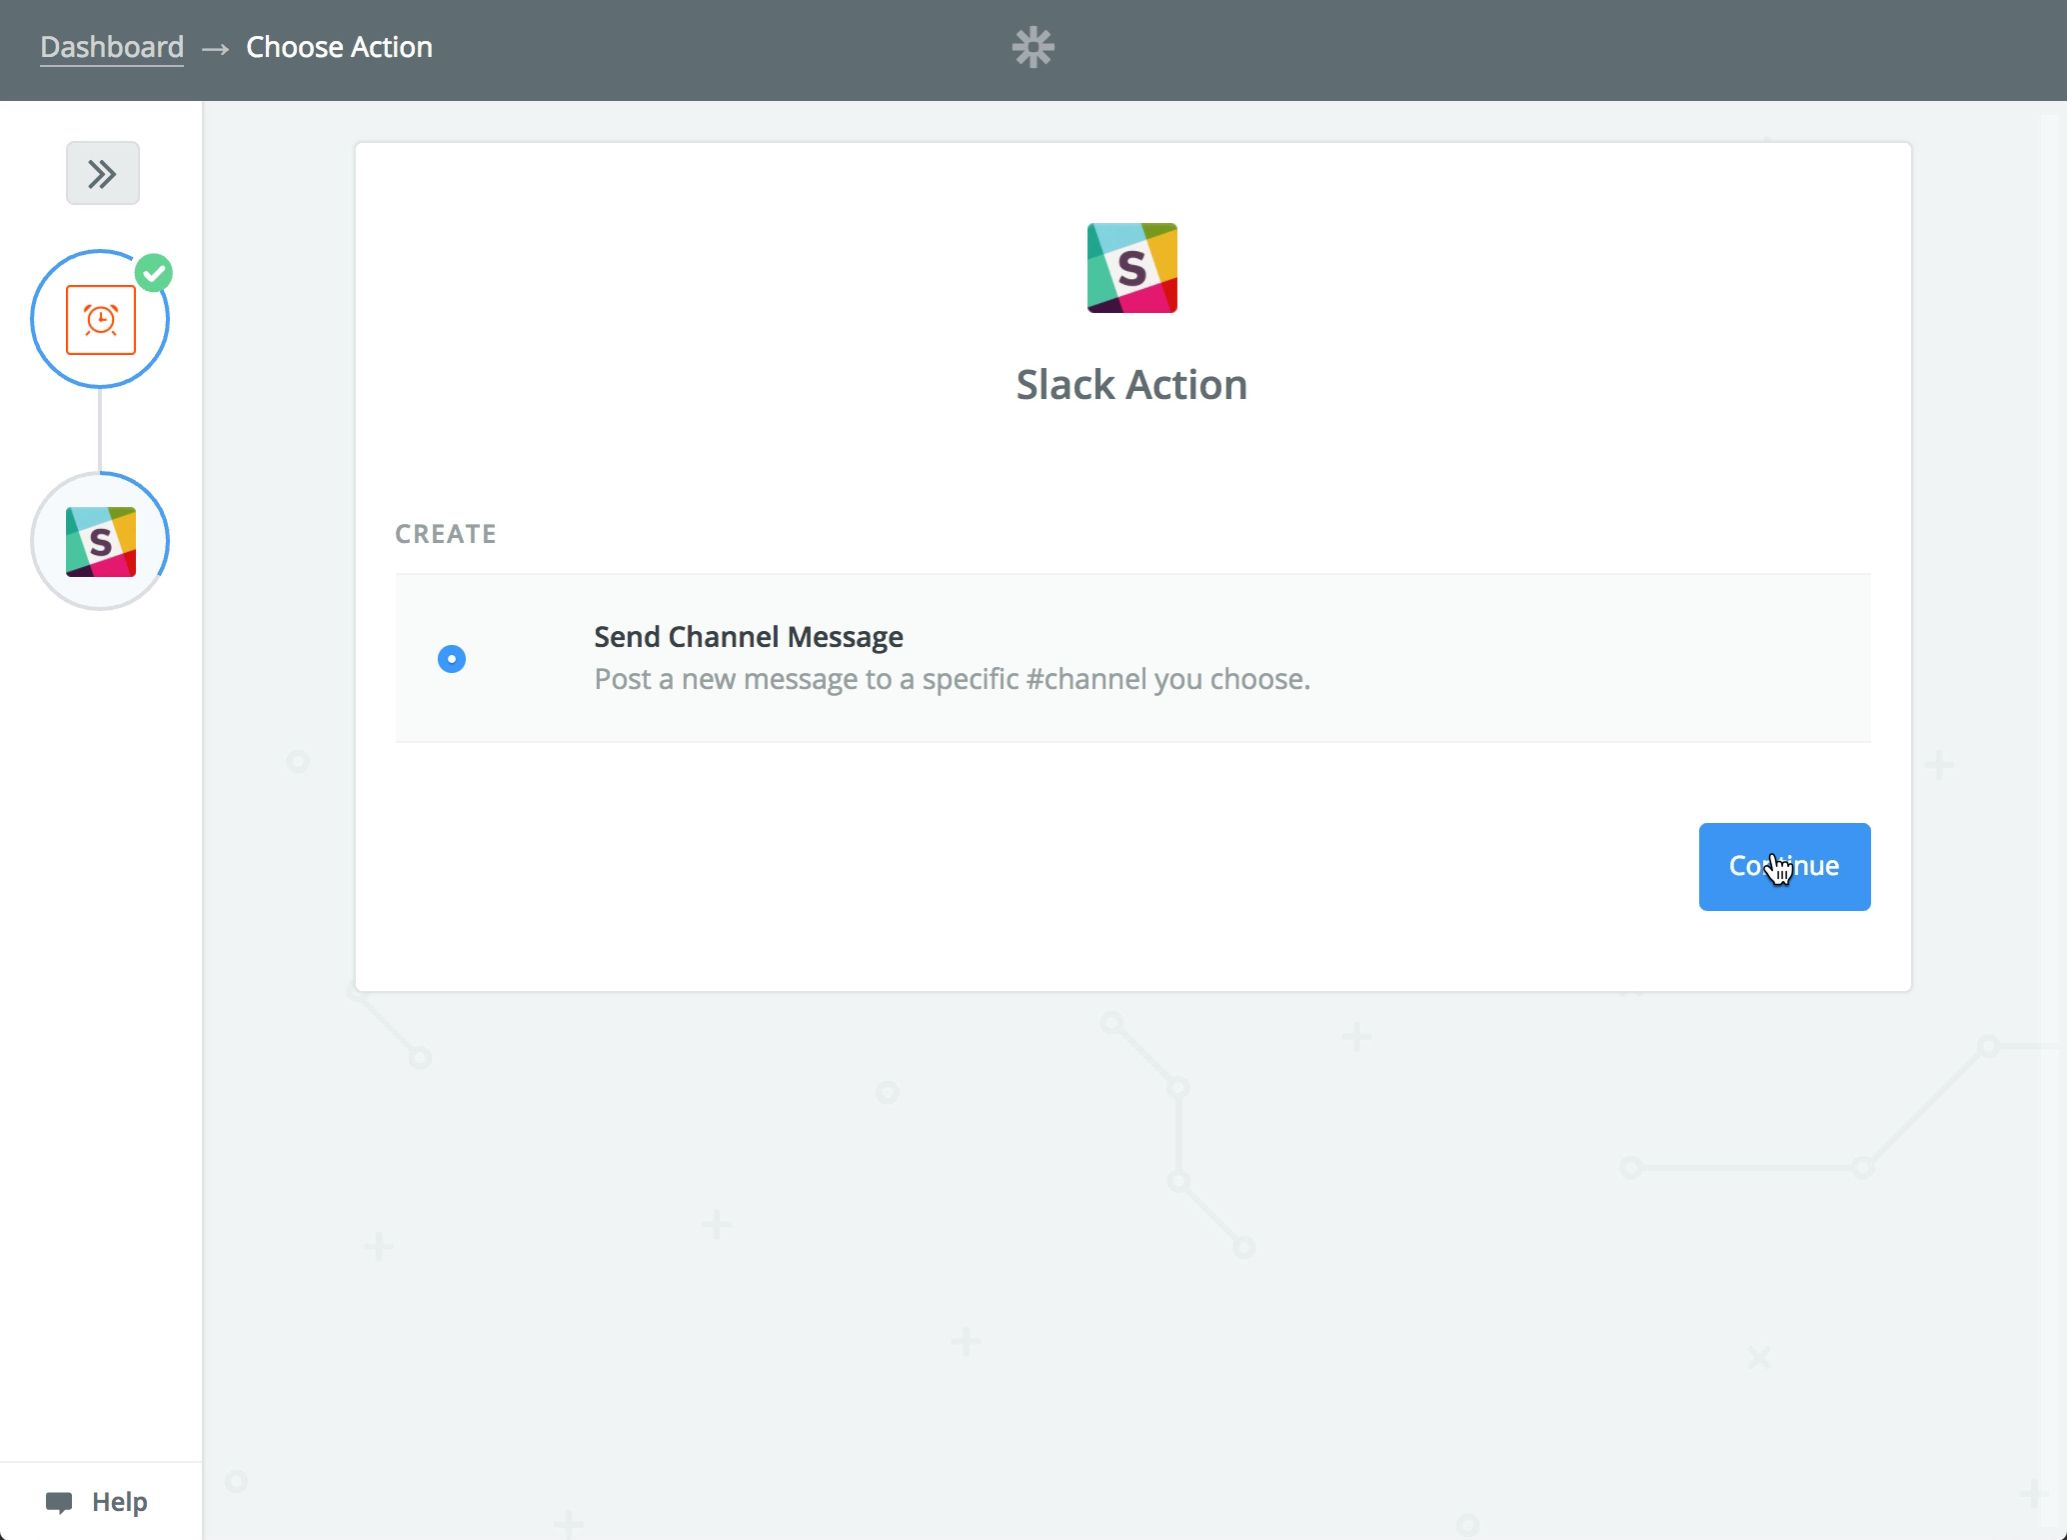 See that Slack will be sending a new channel message